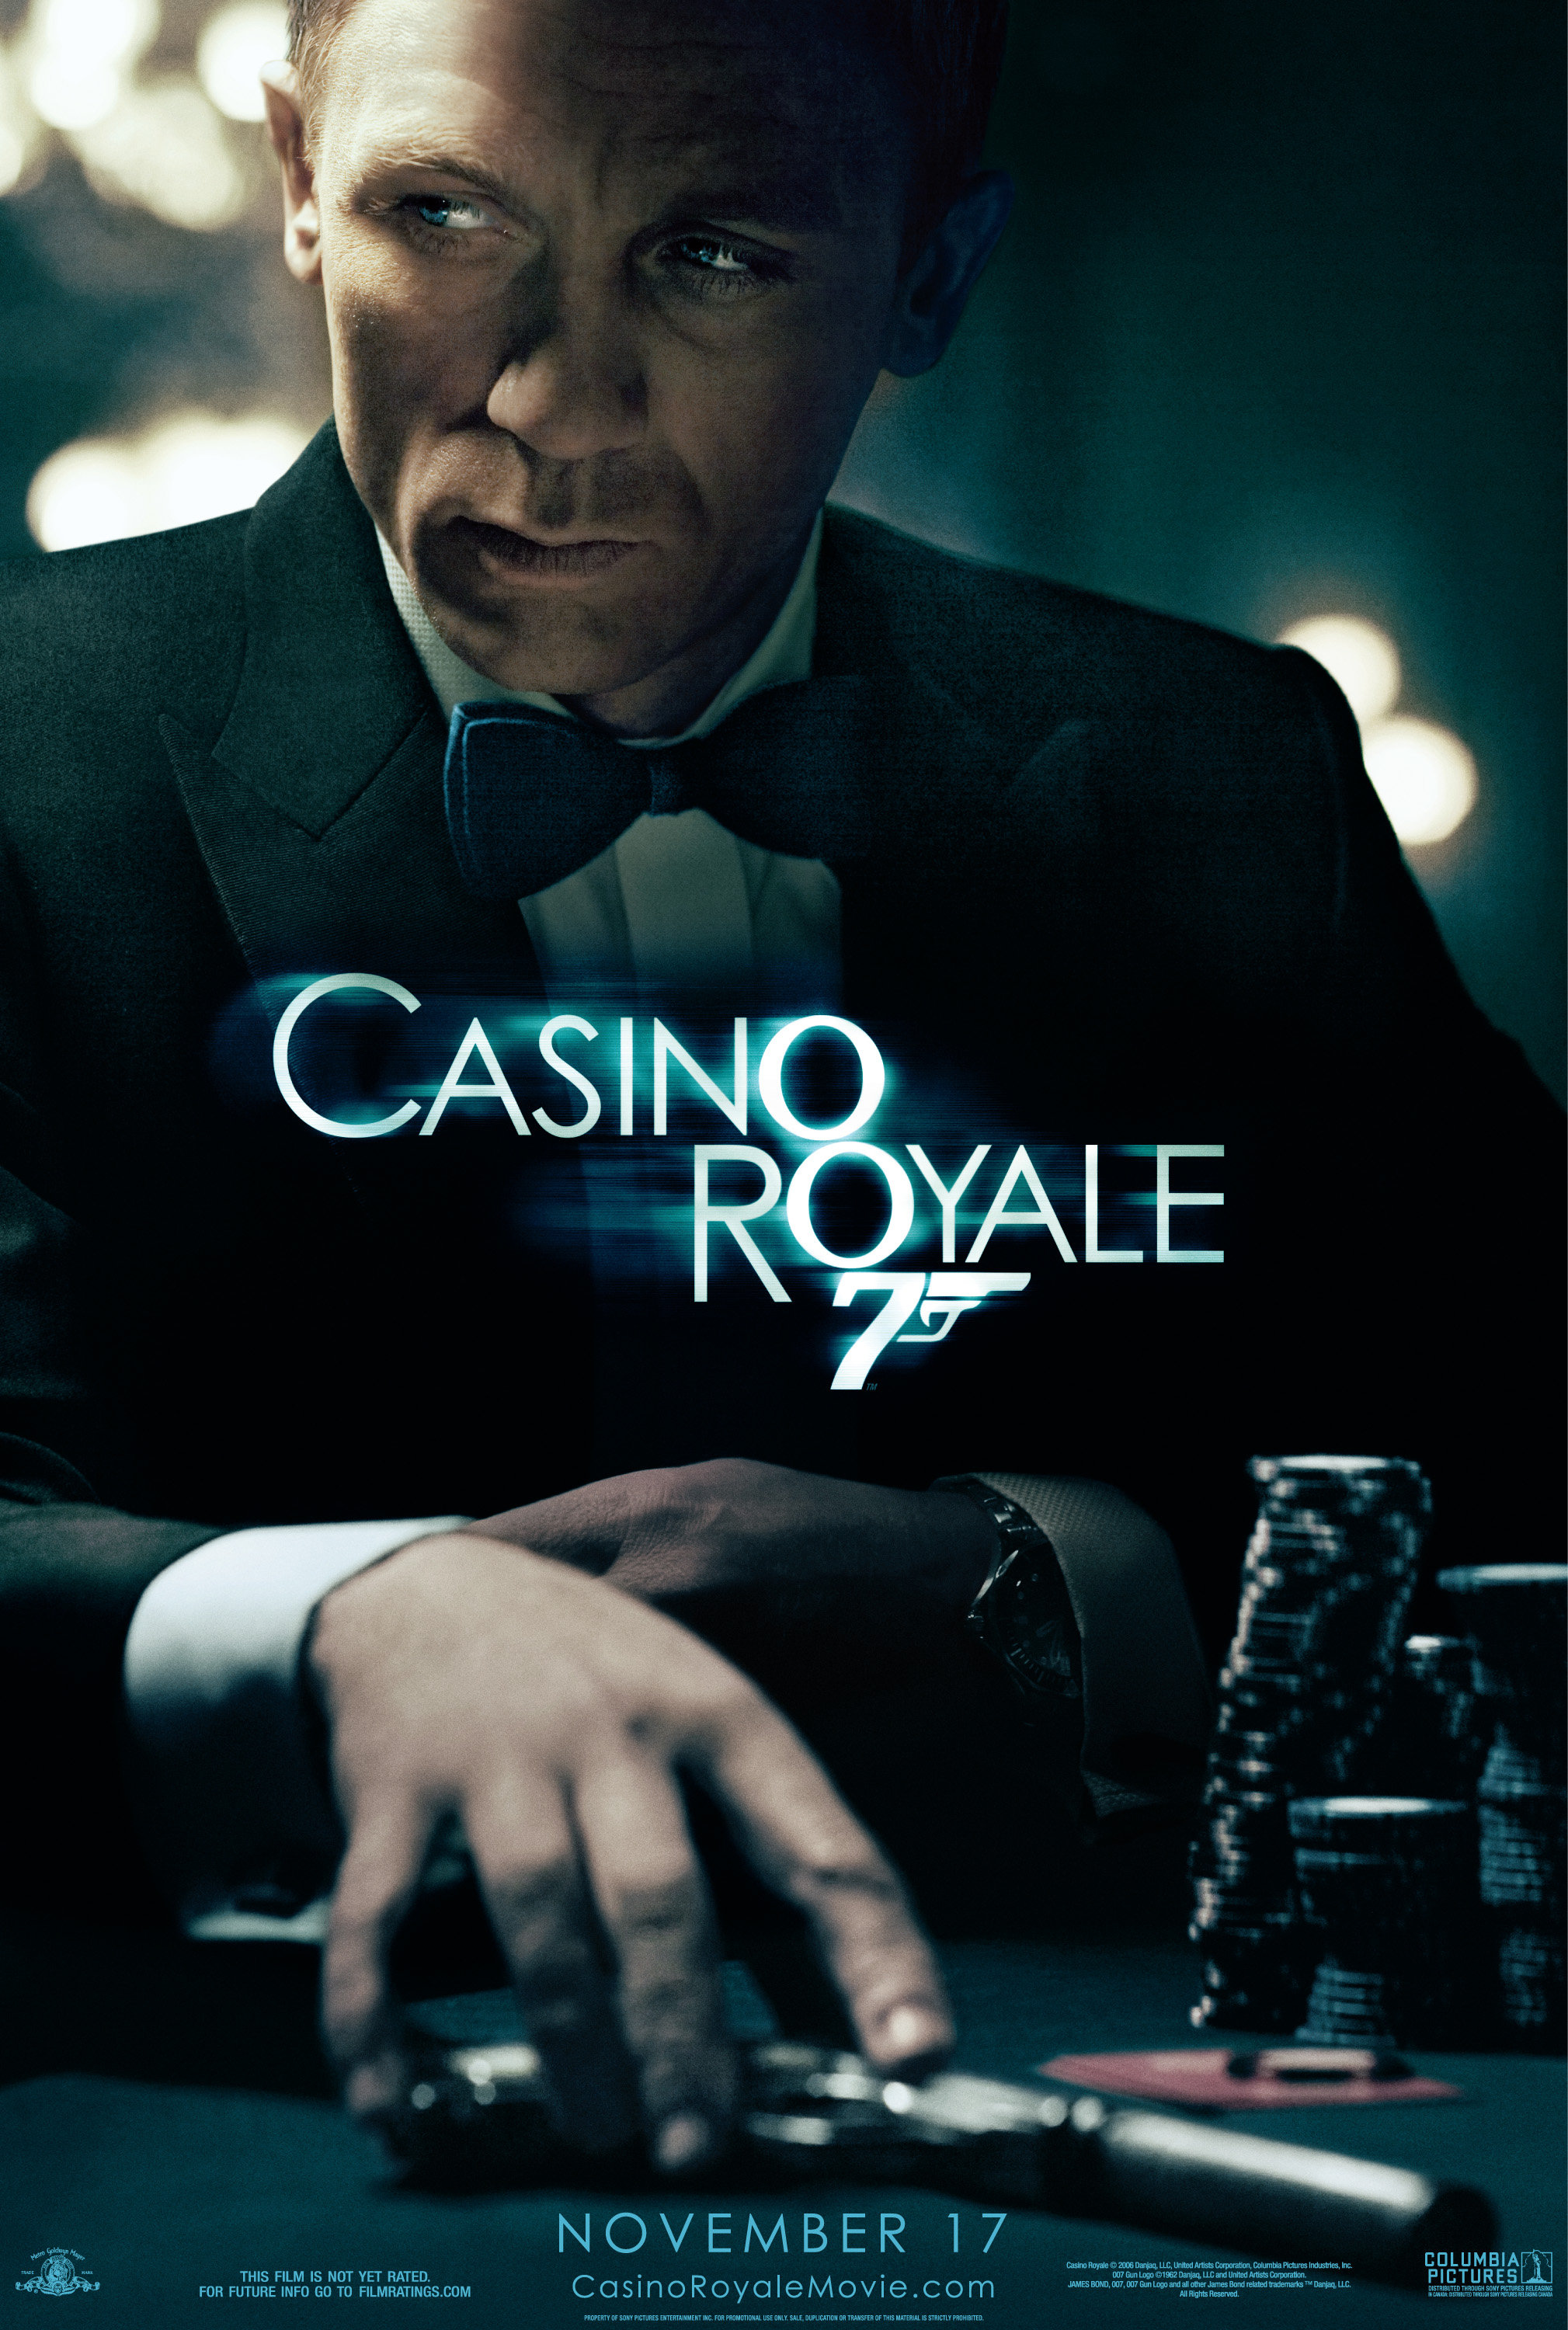 James Bond Casino Royal